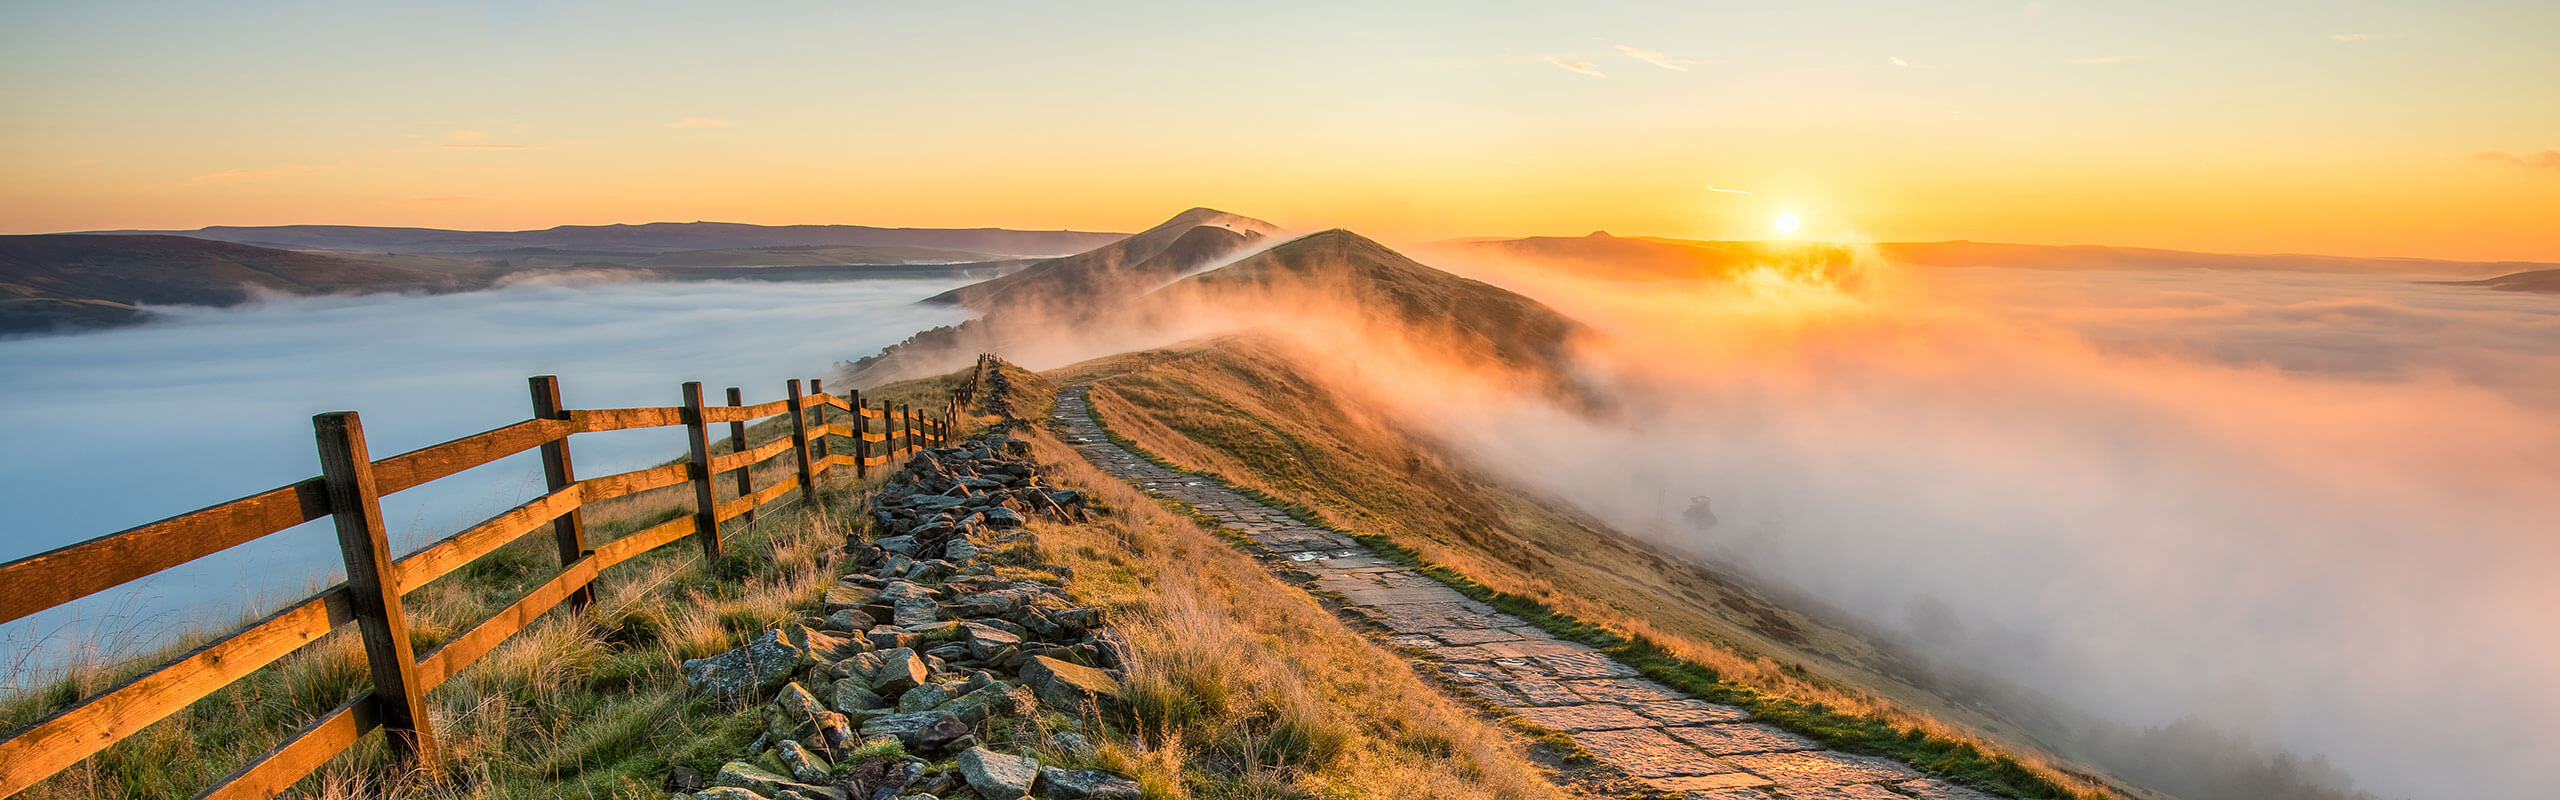 Walking path and fence running over hilltops, above the clouds, with sunrise in distance